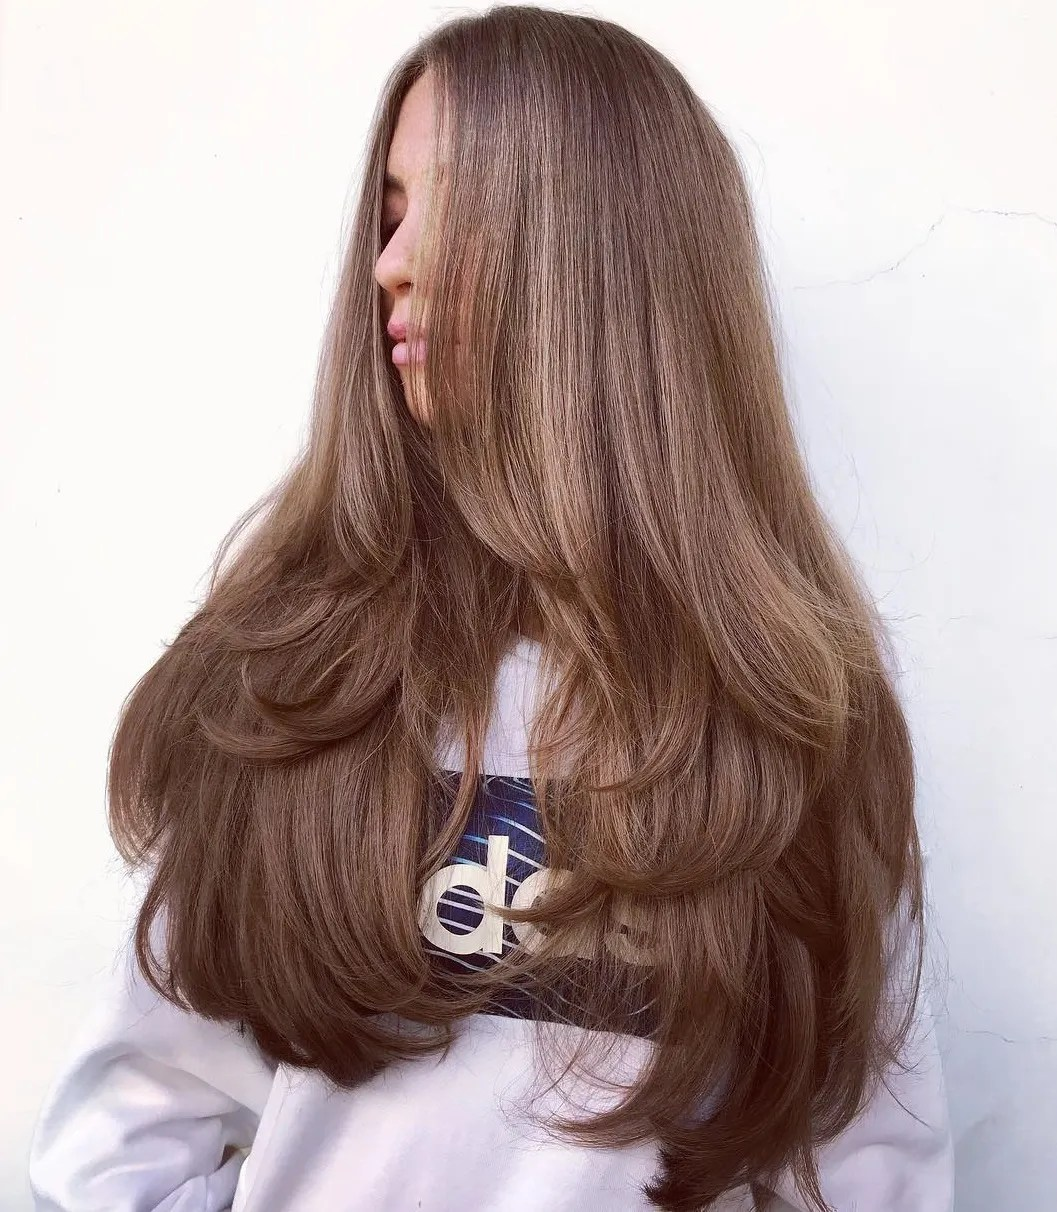 Three-Tiered Cut for Long Thick Hair